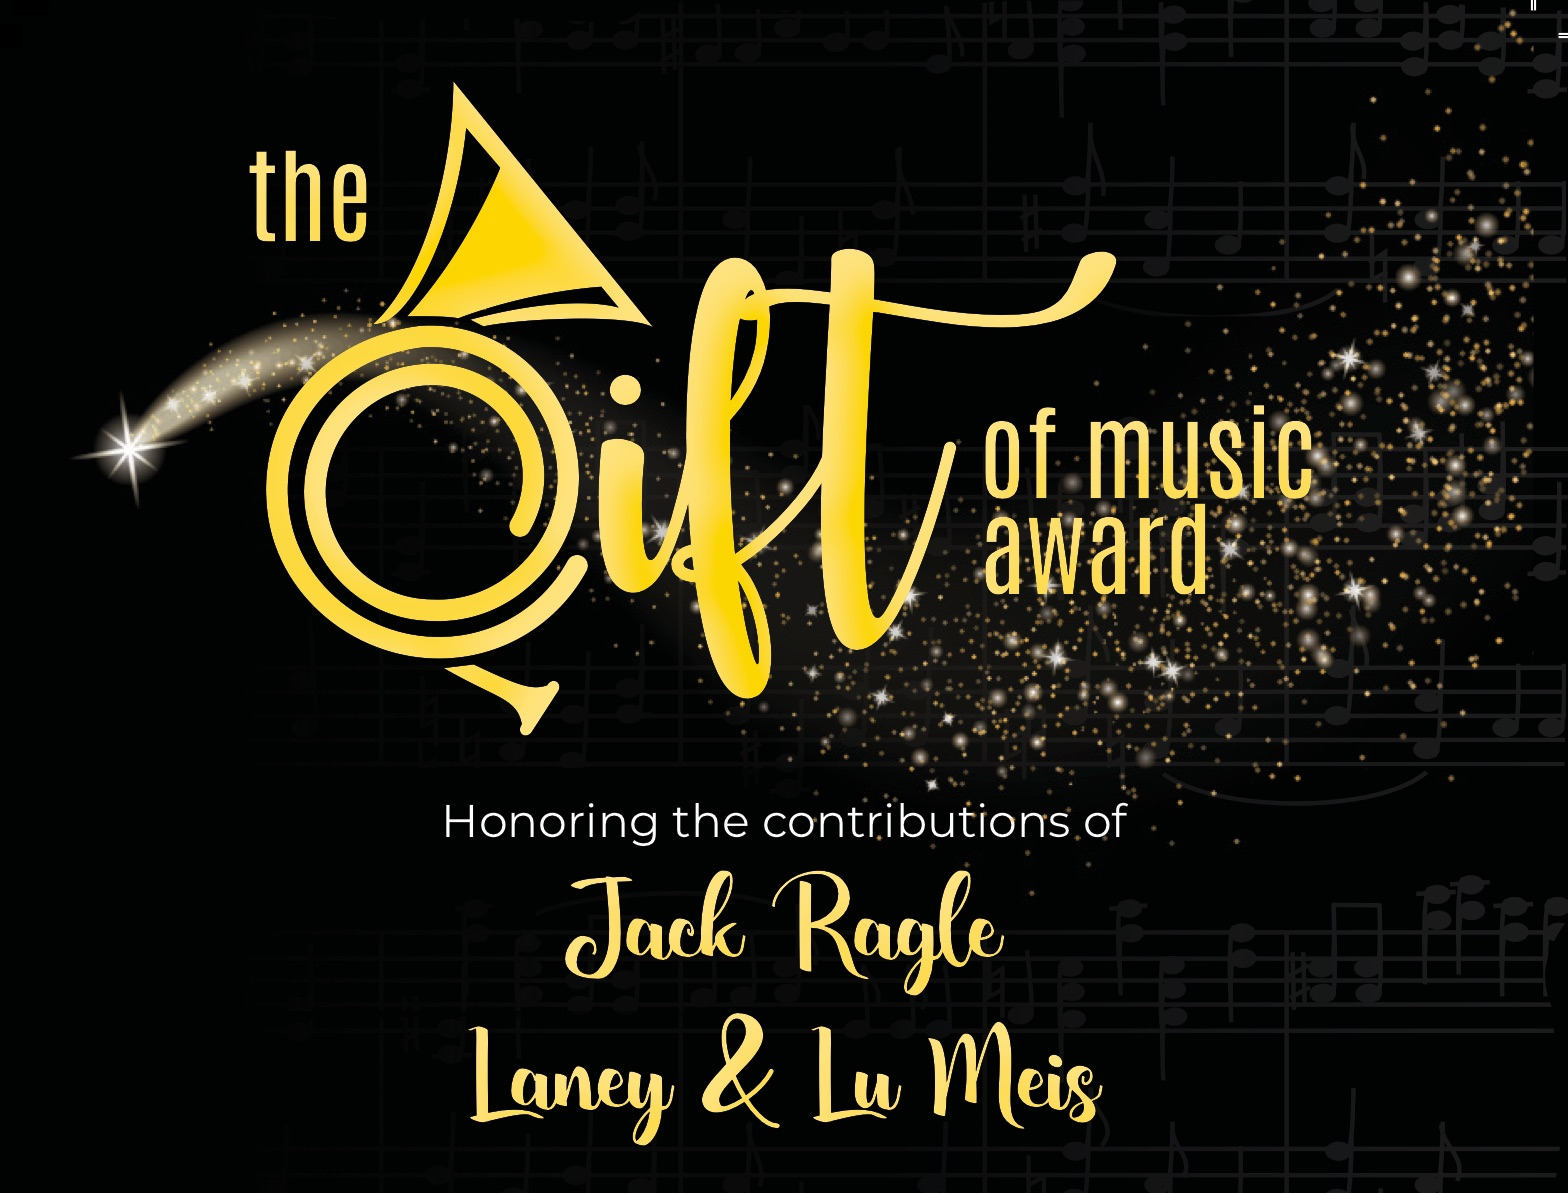 The Gift of Music Award, honoring the contributions of Jack Ragle and Lu & Lancey Meis.